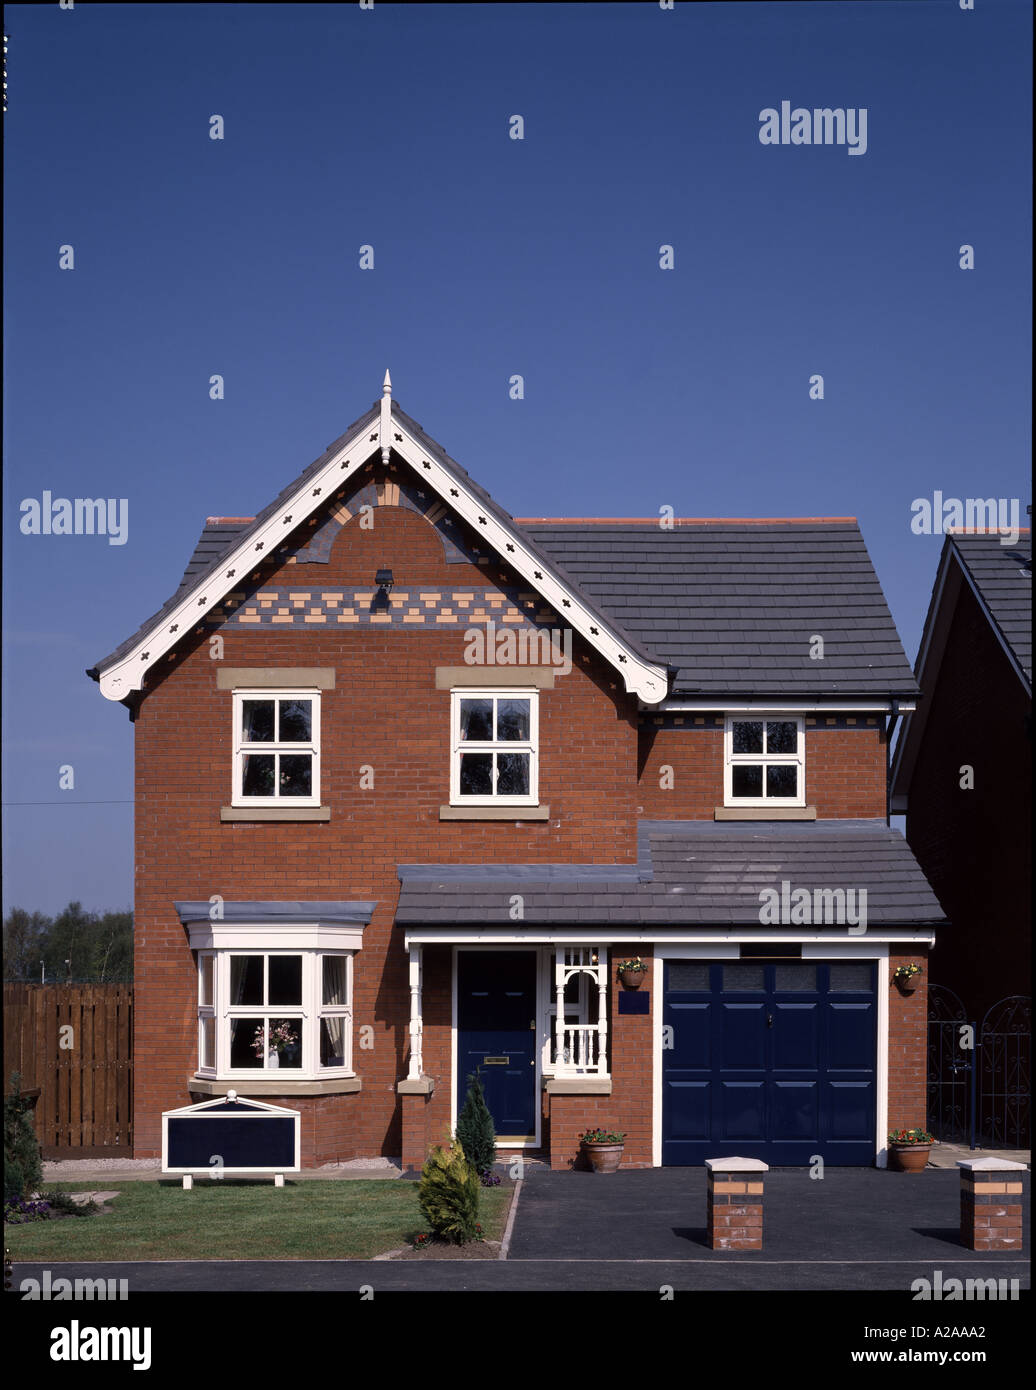 Front Elevation Of Houses In Uk : Front elevation of ordinary red brick pitched roof